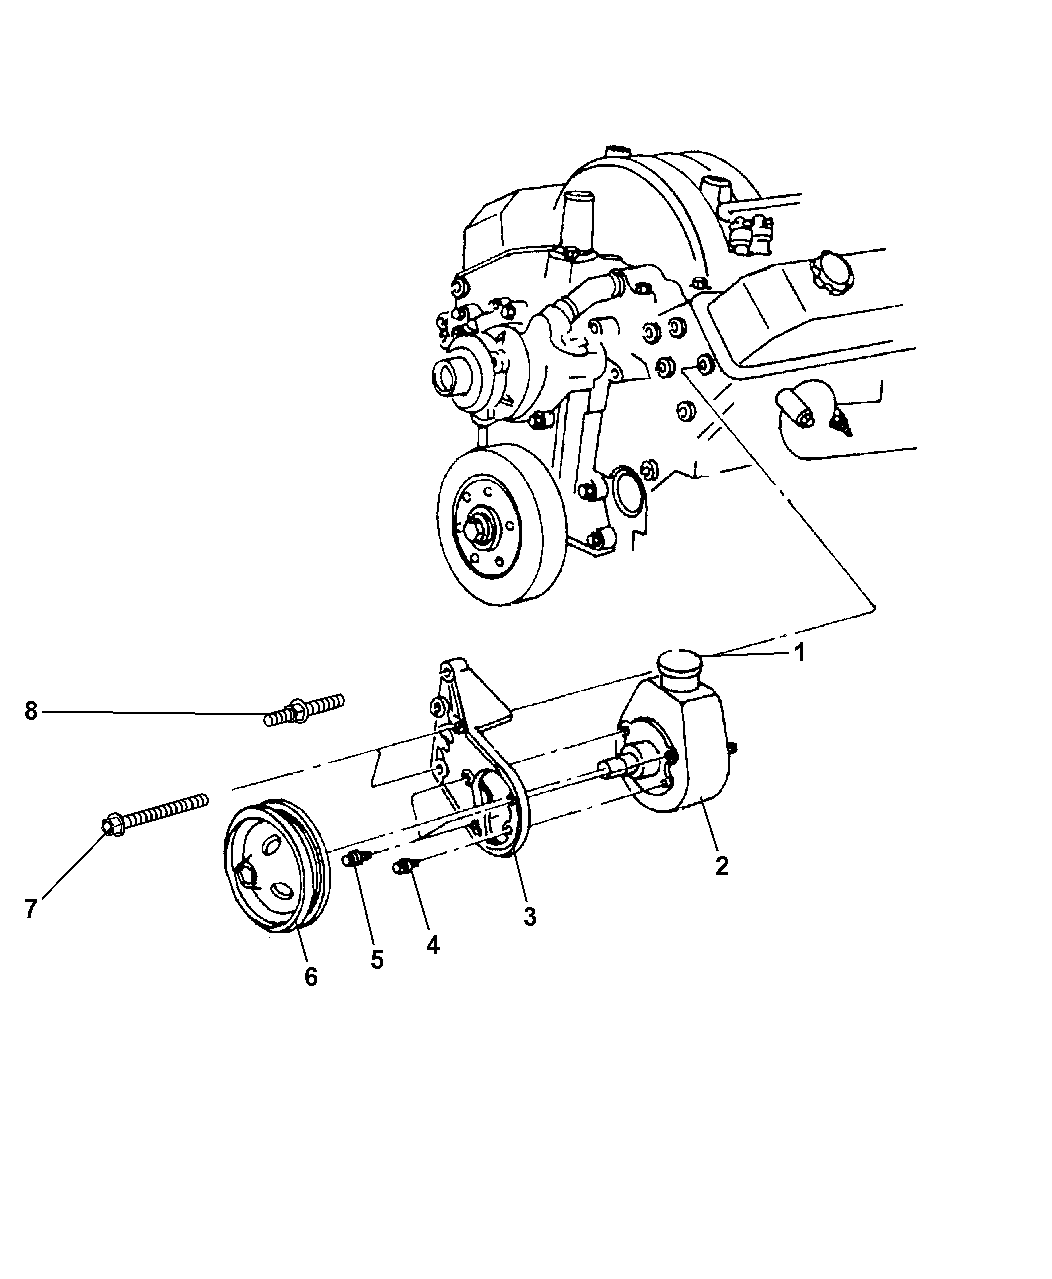 Dodge Durango 5 9l Engine Diagram Dodge Auto Wiring Diagram